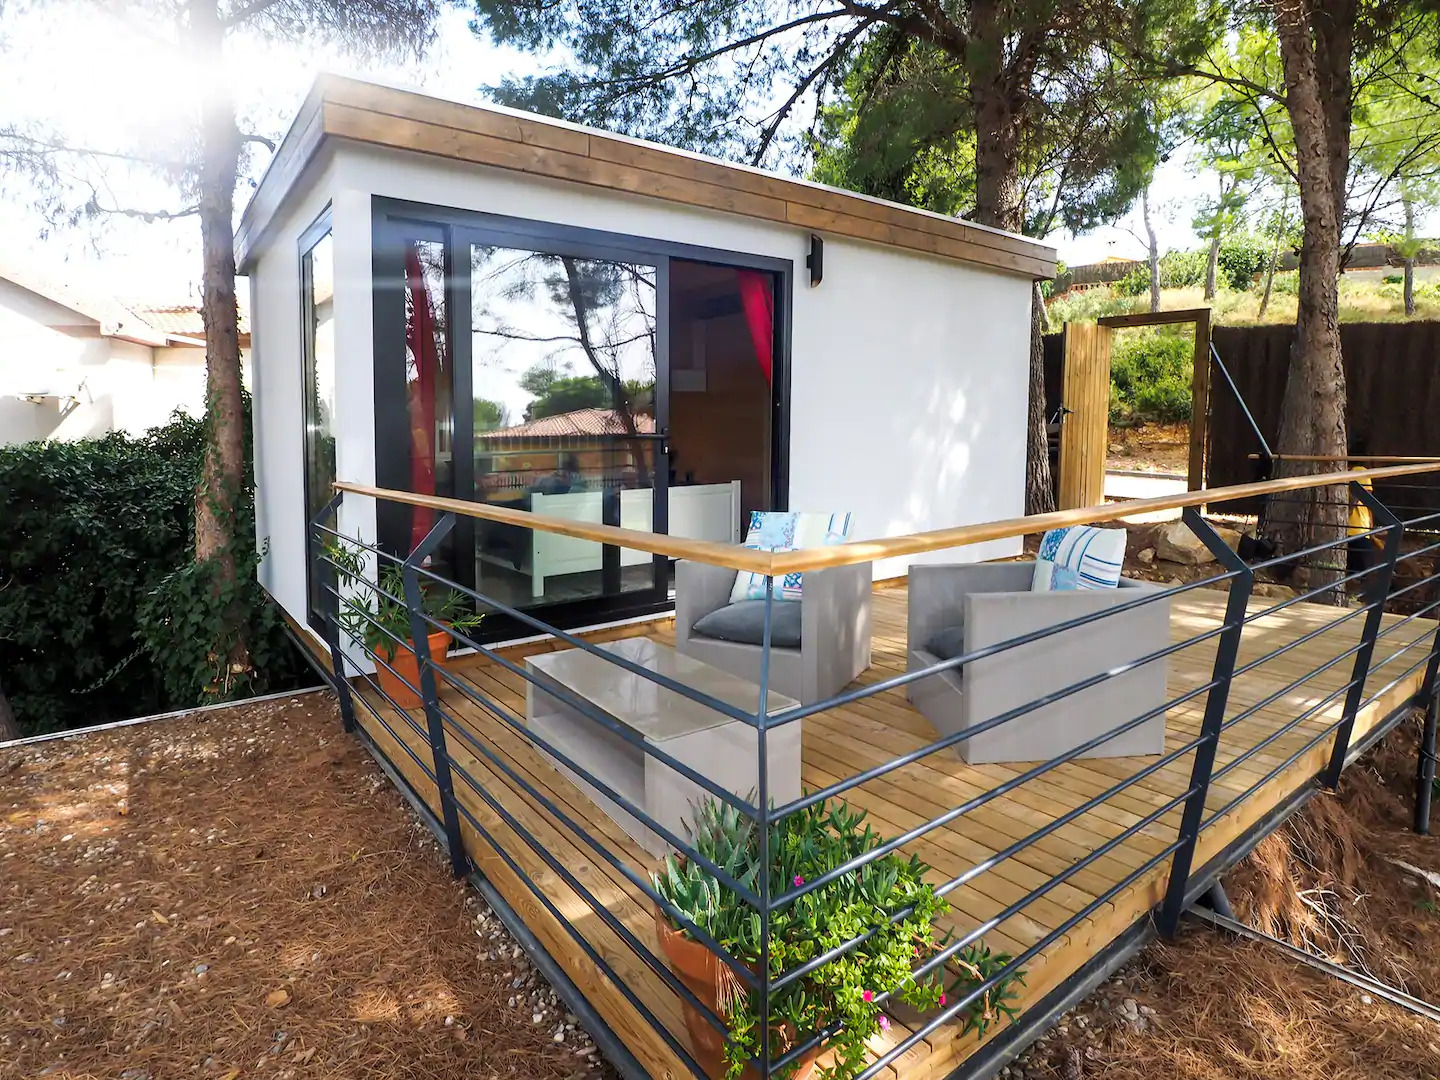 Airbnb Tiny Houses in Barcelona